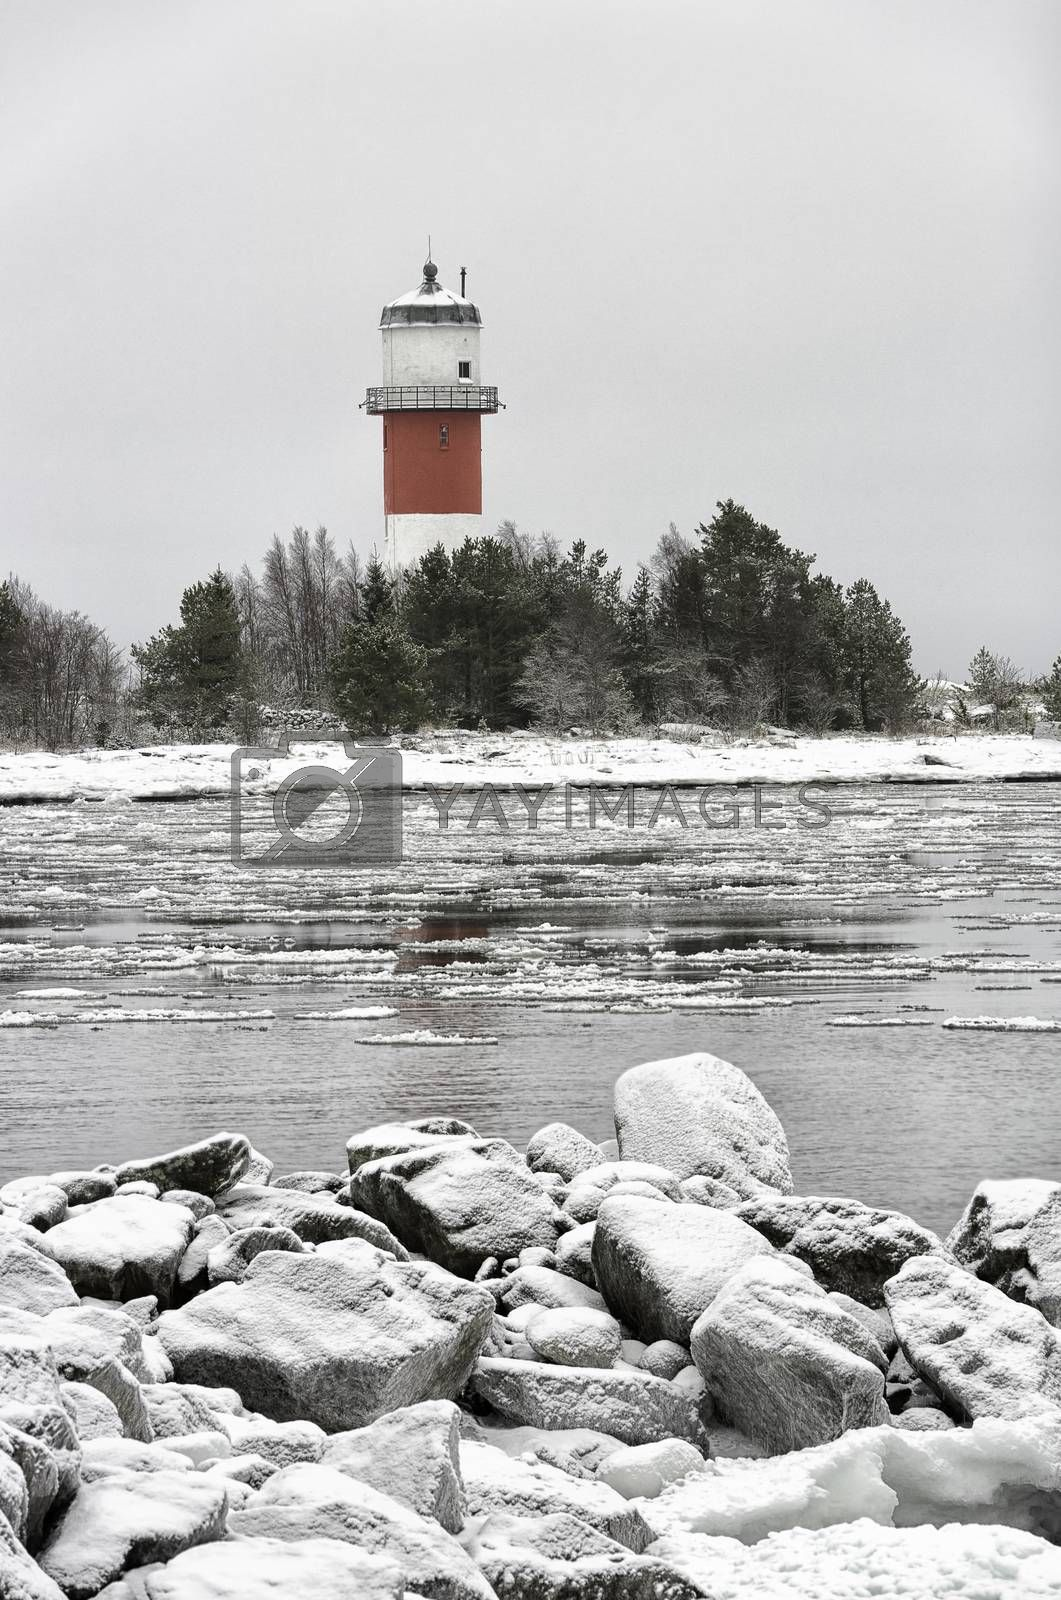 Light House with Icy Ocean  by Emmoth